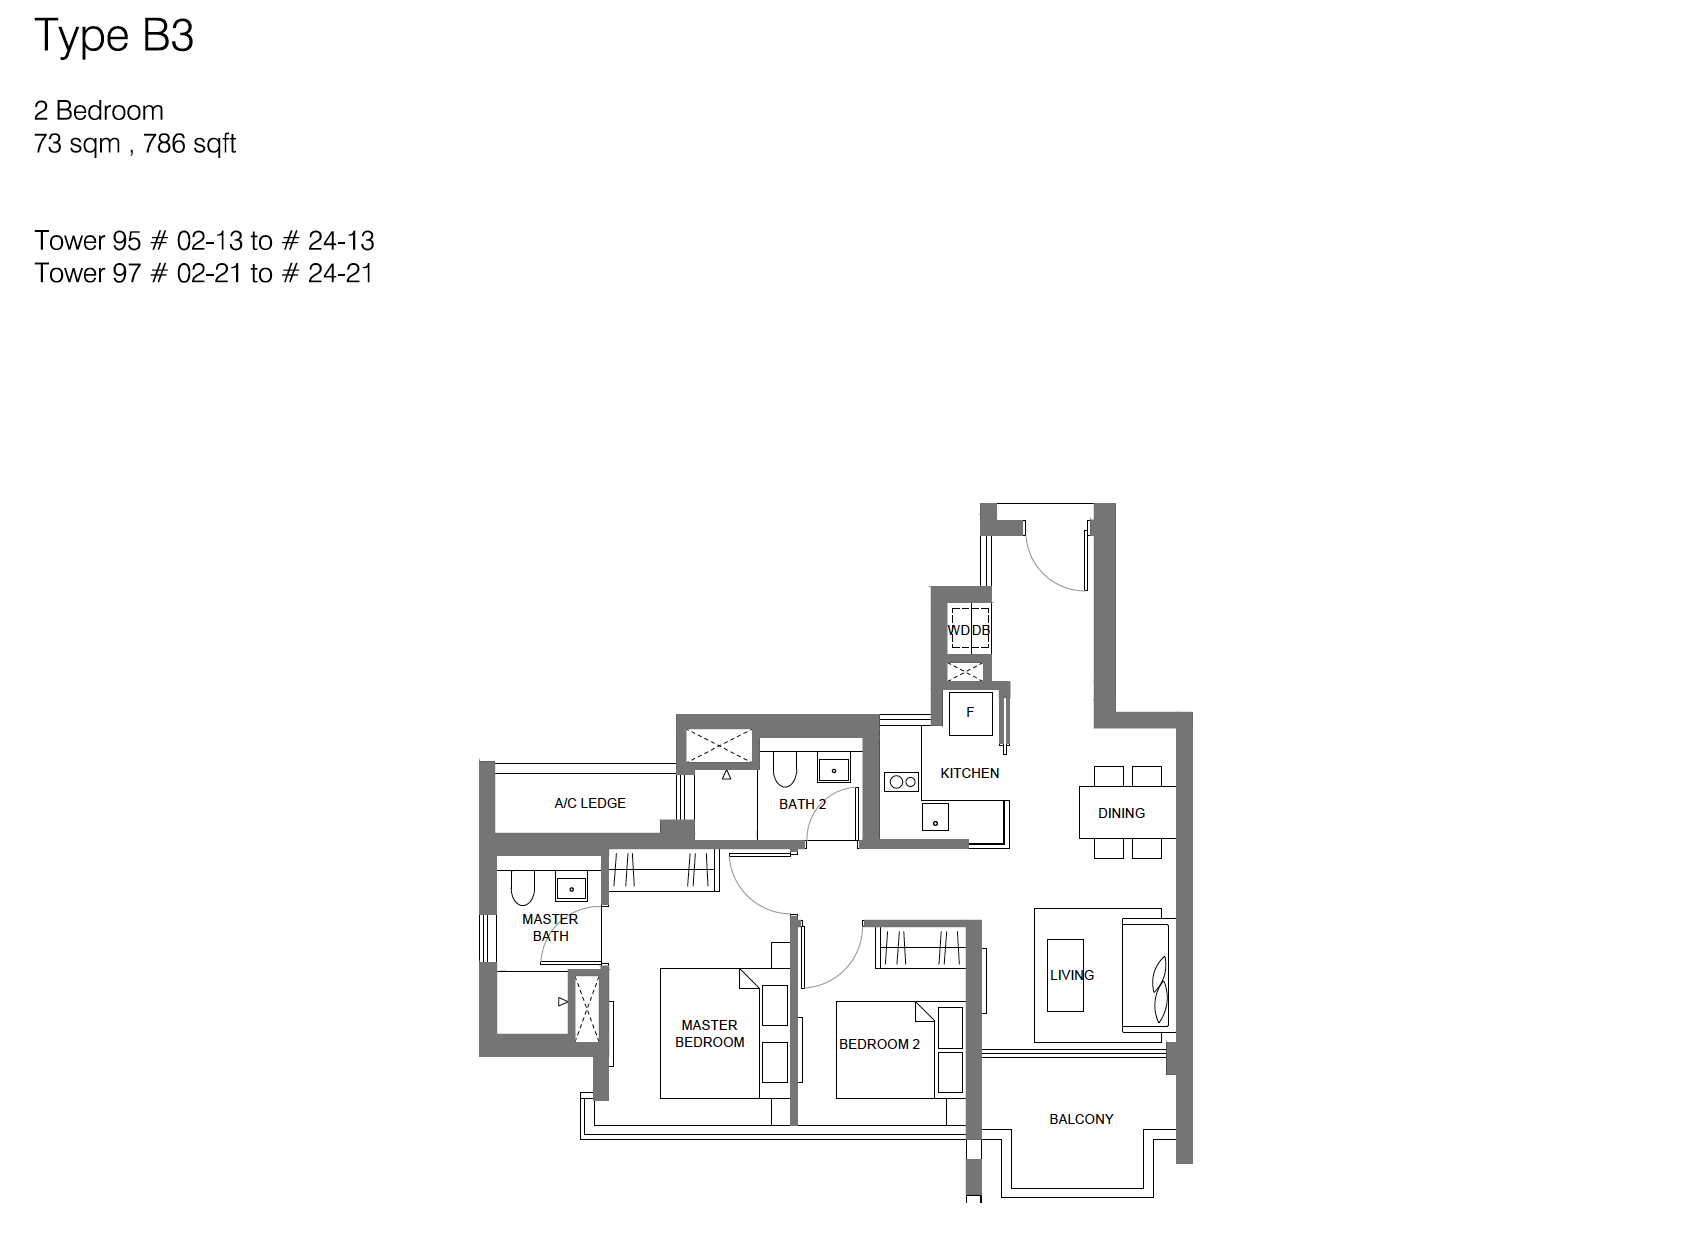 Principal Garden floor plan - 2 bedroom (type B3)